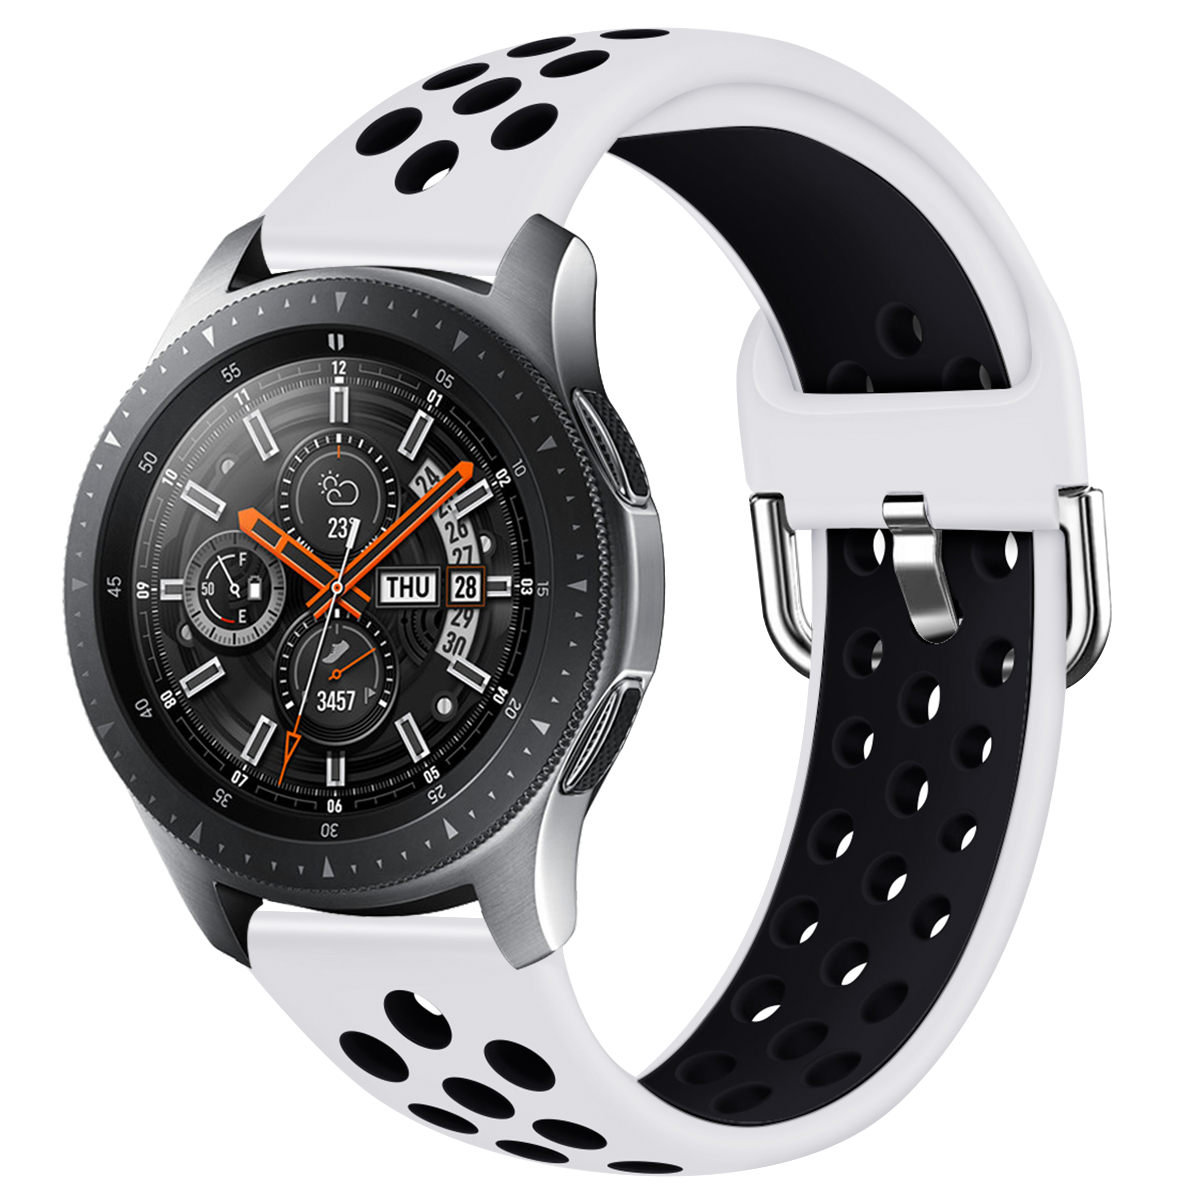 22mm Silicone Watchband For Samsung Galaxy Watch 46mm Replacement Bracelet Band Strap For SM-R800 Huawei GT 2  91002